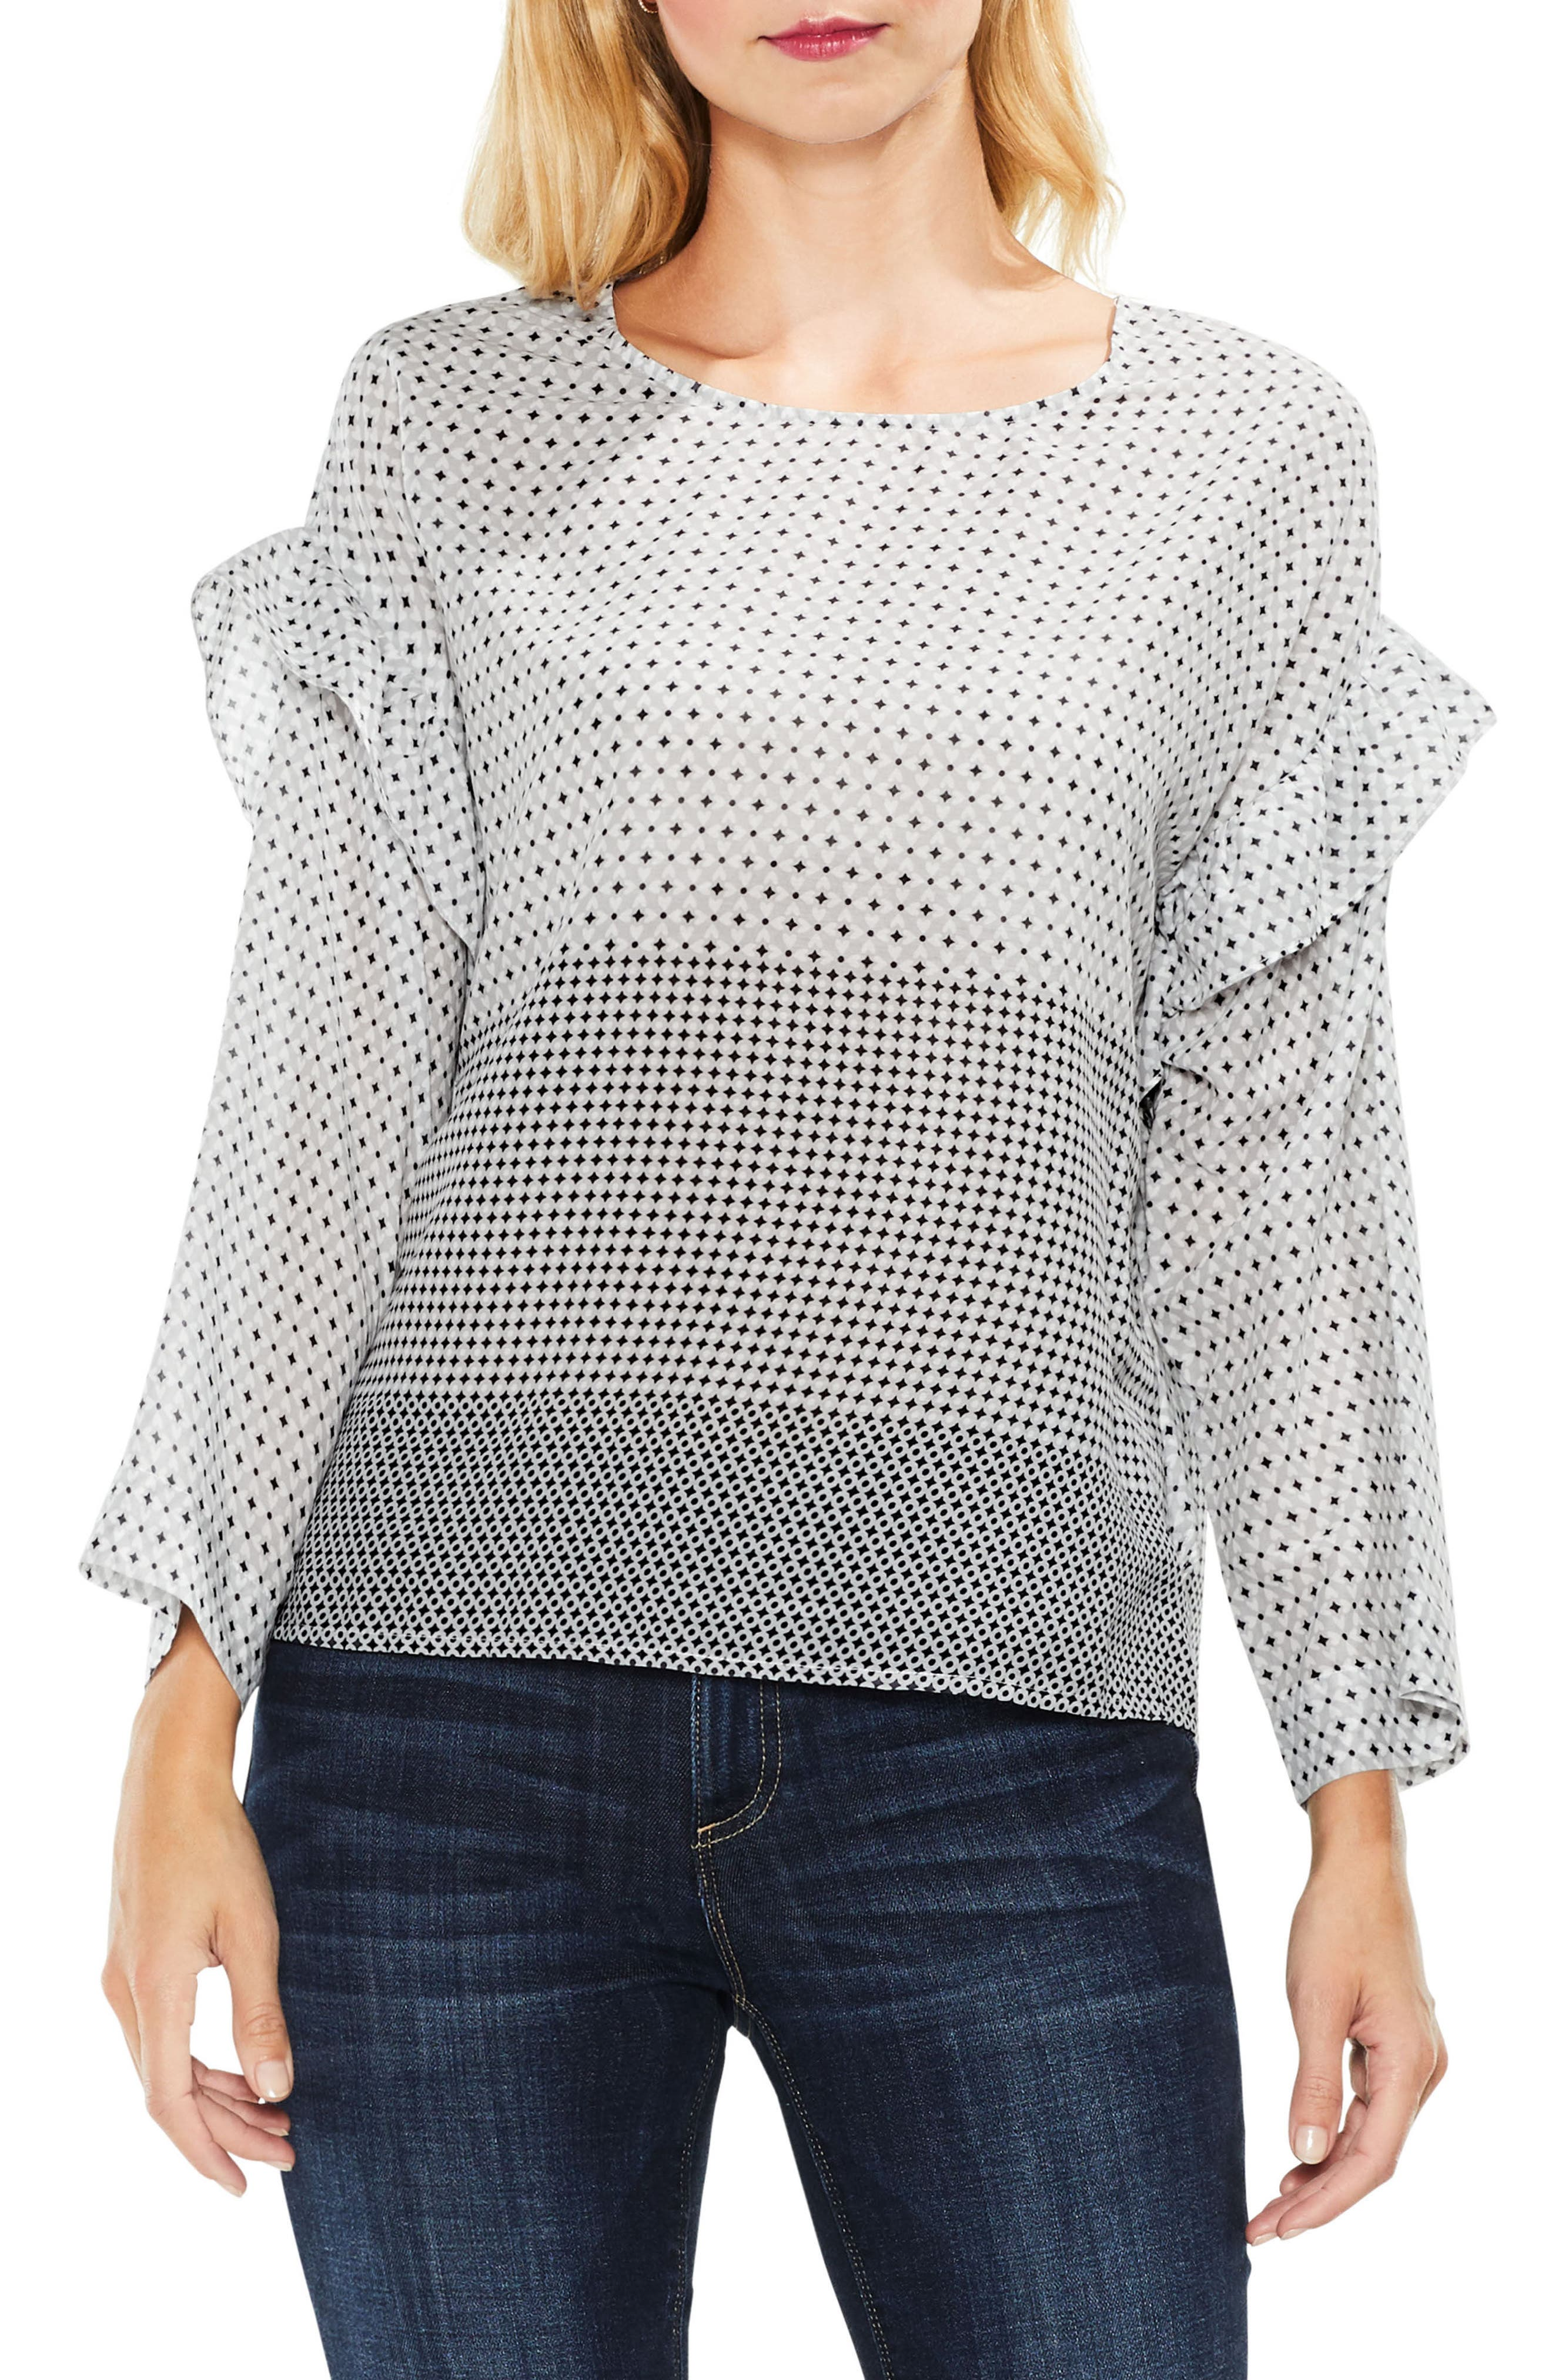 Two by VInce Camuto Quiet Tile Border Ruffle Top,                         Main,                         color, Magnet